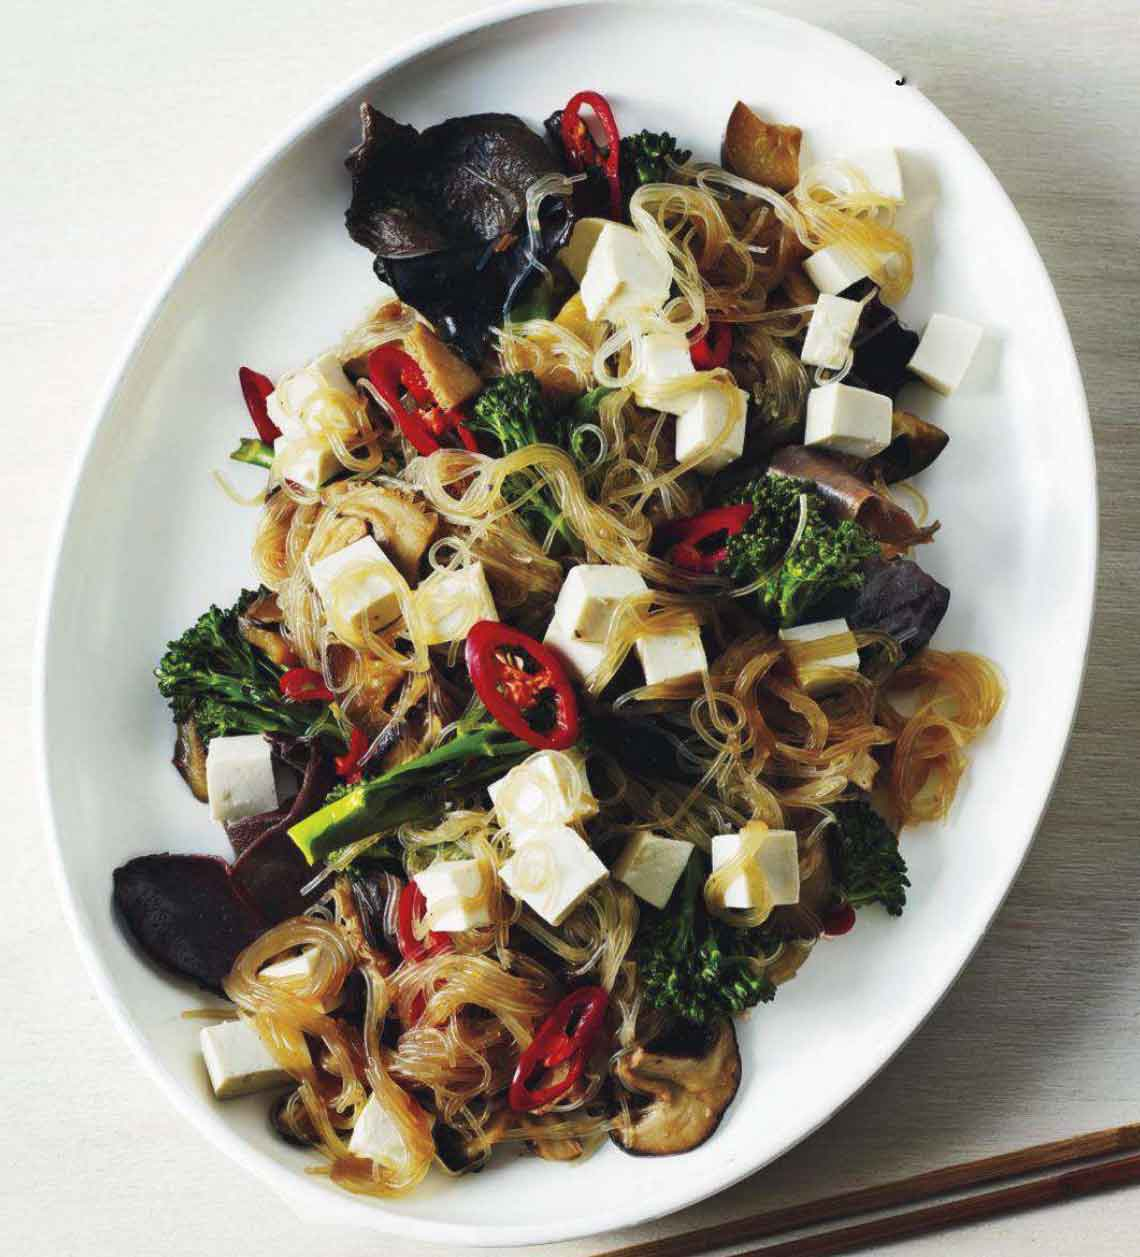 Easy Food Recipes And Cooking Bean Thread Noodles With Tofu And